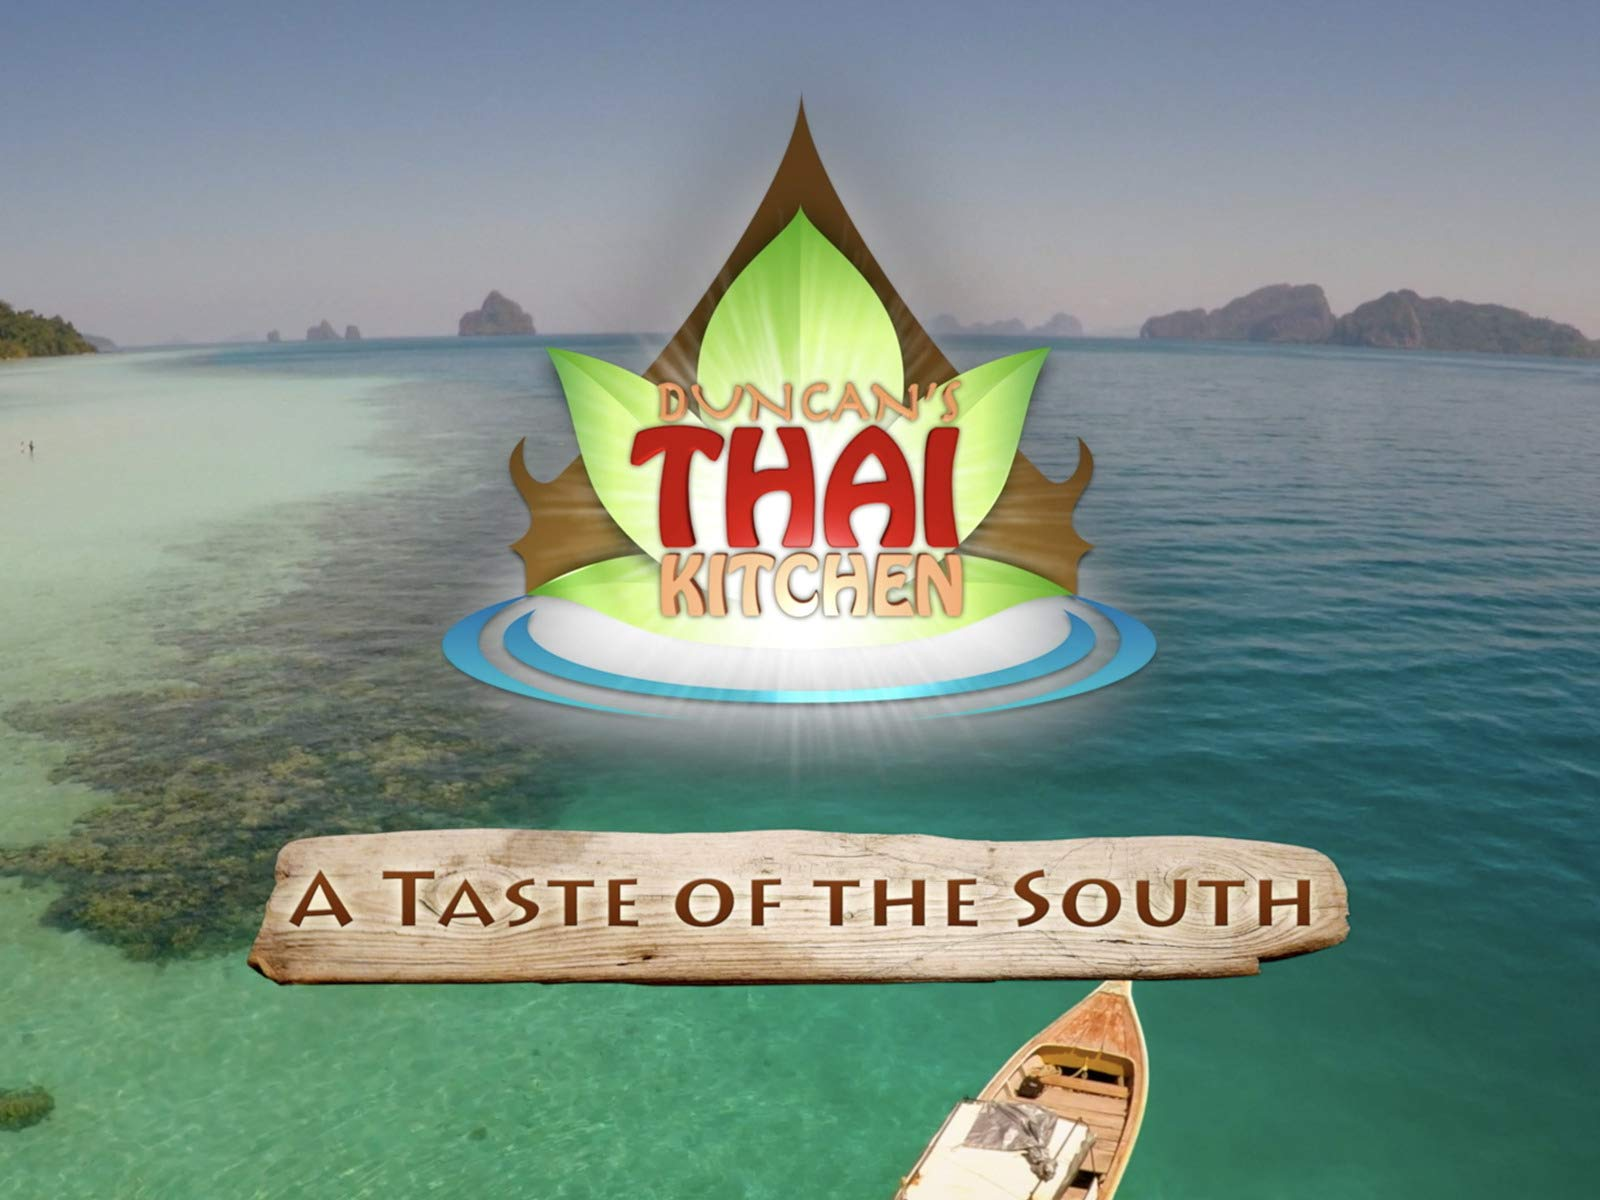 Duncan's Thai Kitchen - Season 2